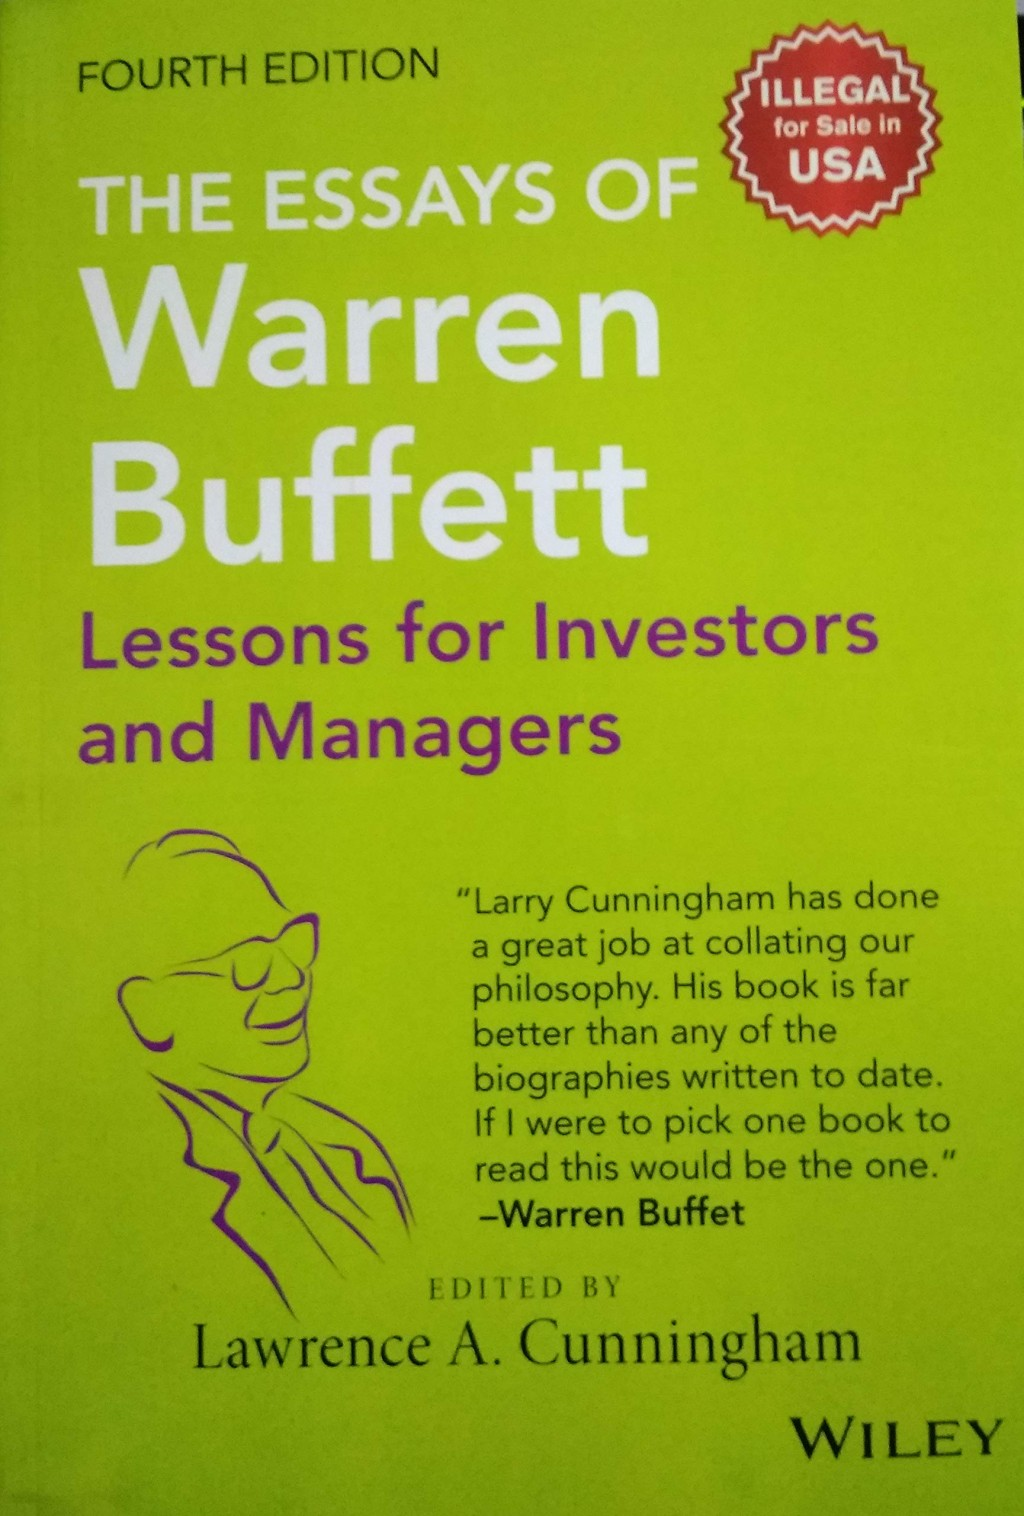 006 Essays Of Warren Buffett 81k2r32ddul Essay Top 4th Edition The Pdf Free Large